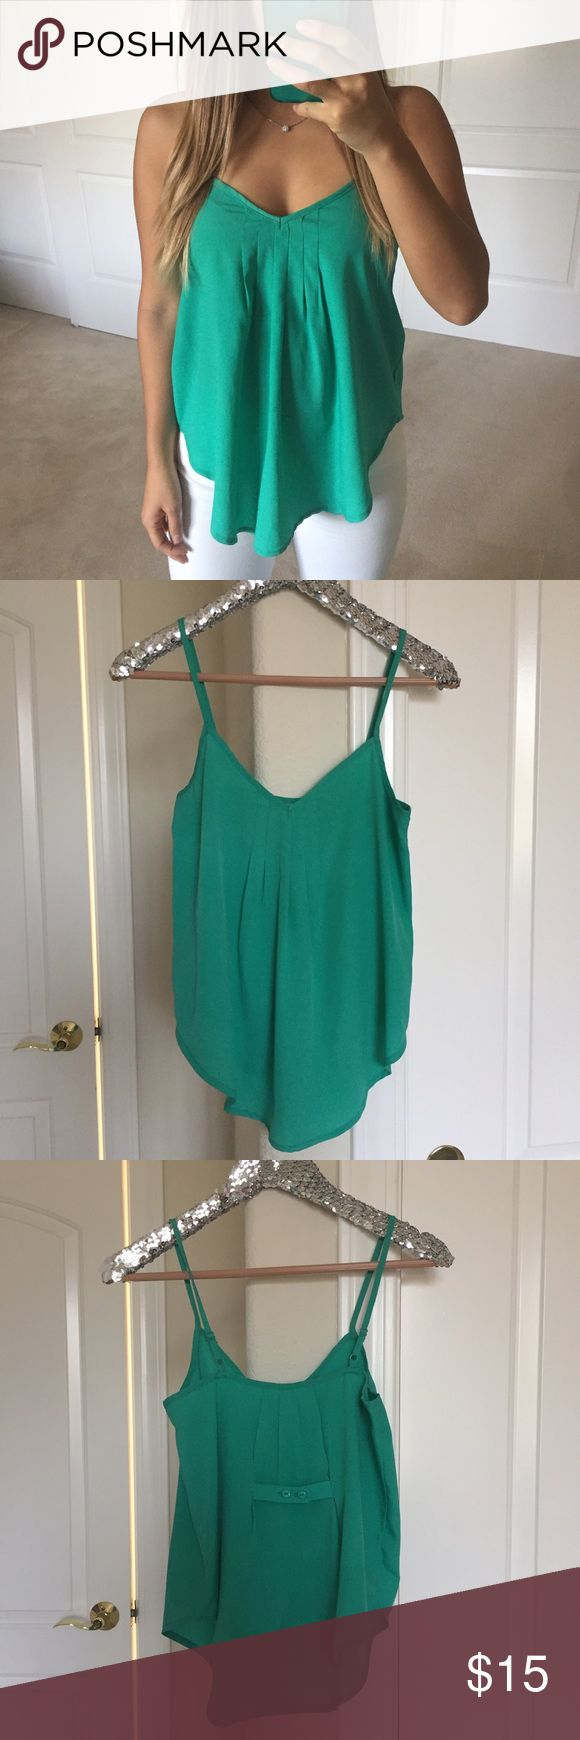 Teal Green Cami Top Purchased from a boutique! Perfect for a day to night look. Straps are adjustable. Tops